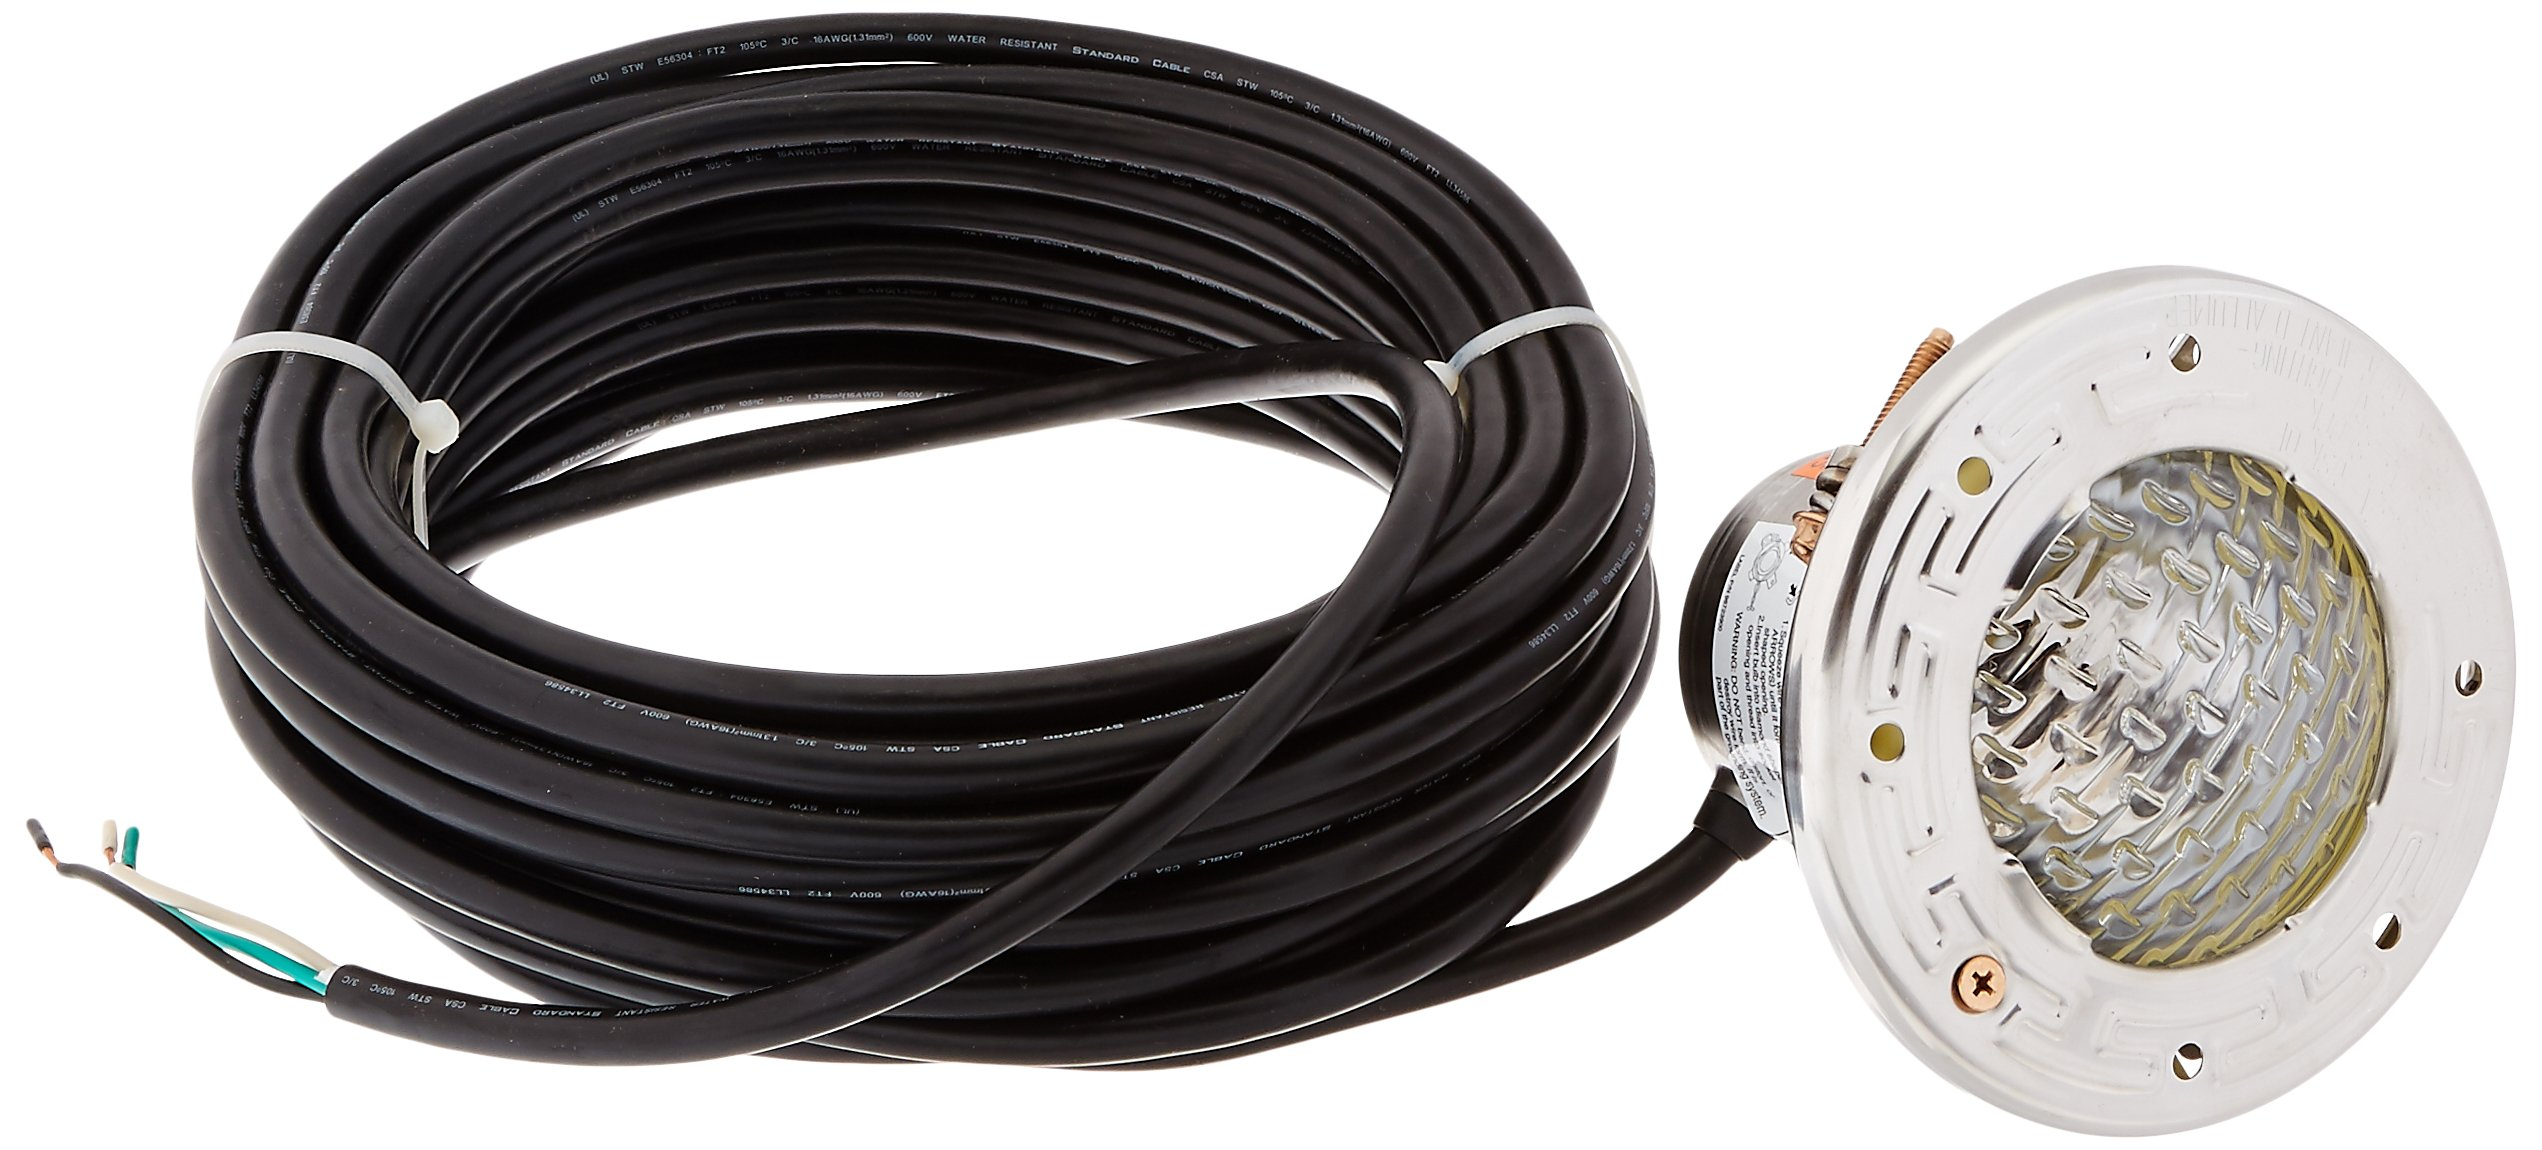 Pentair 77118100 Stainless Steel AquaLight Halogen Quartz Light 120-Volt 100-Watt, 50-Feet Cord by Pentair